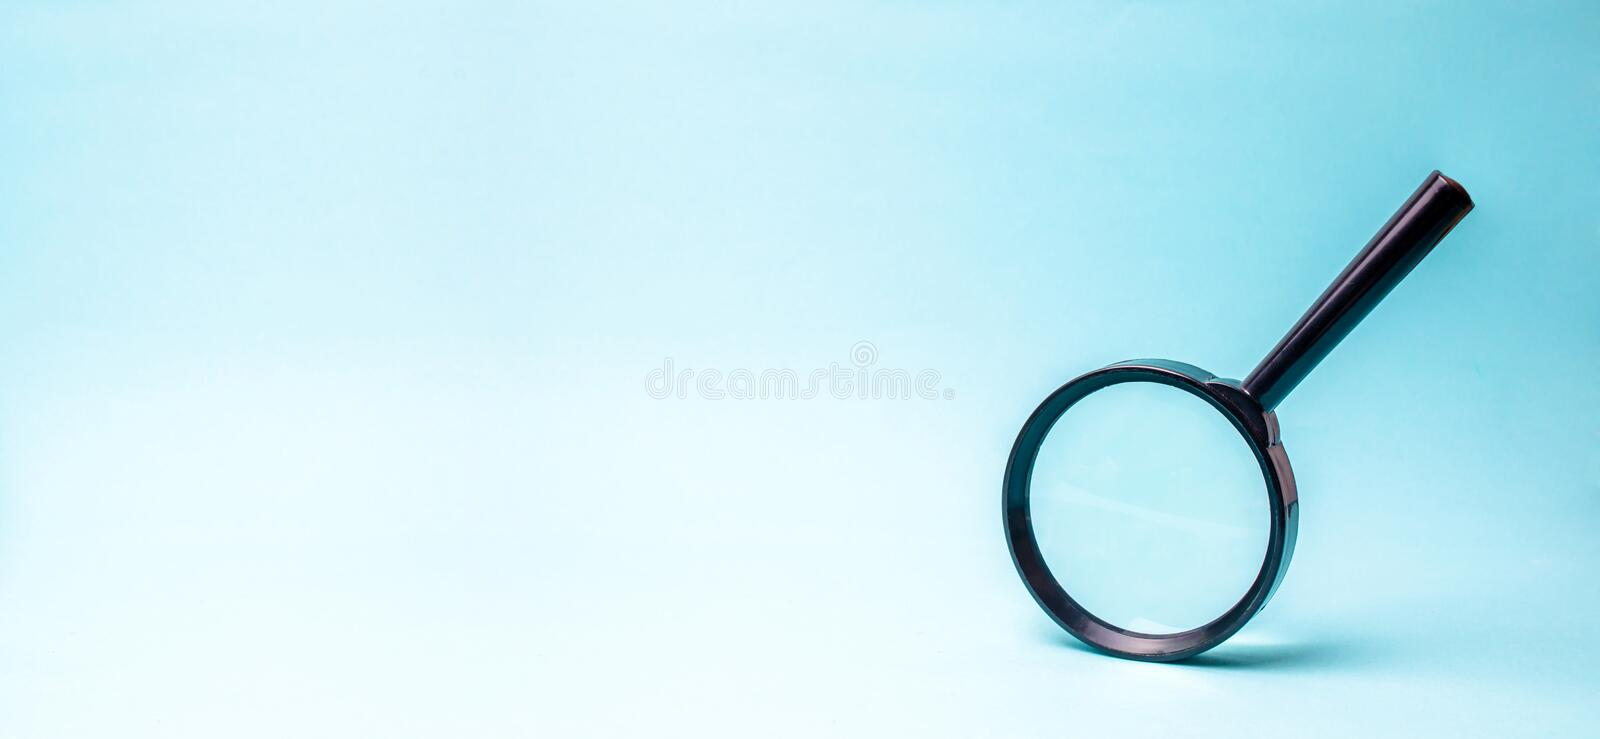 Magnifying glass on blue background. search and analysis, analytics and study of details. Validation, identification of fakes royalty free stock image